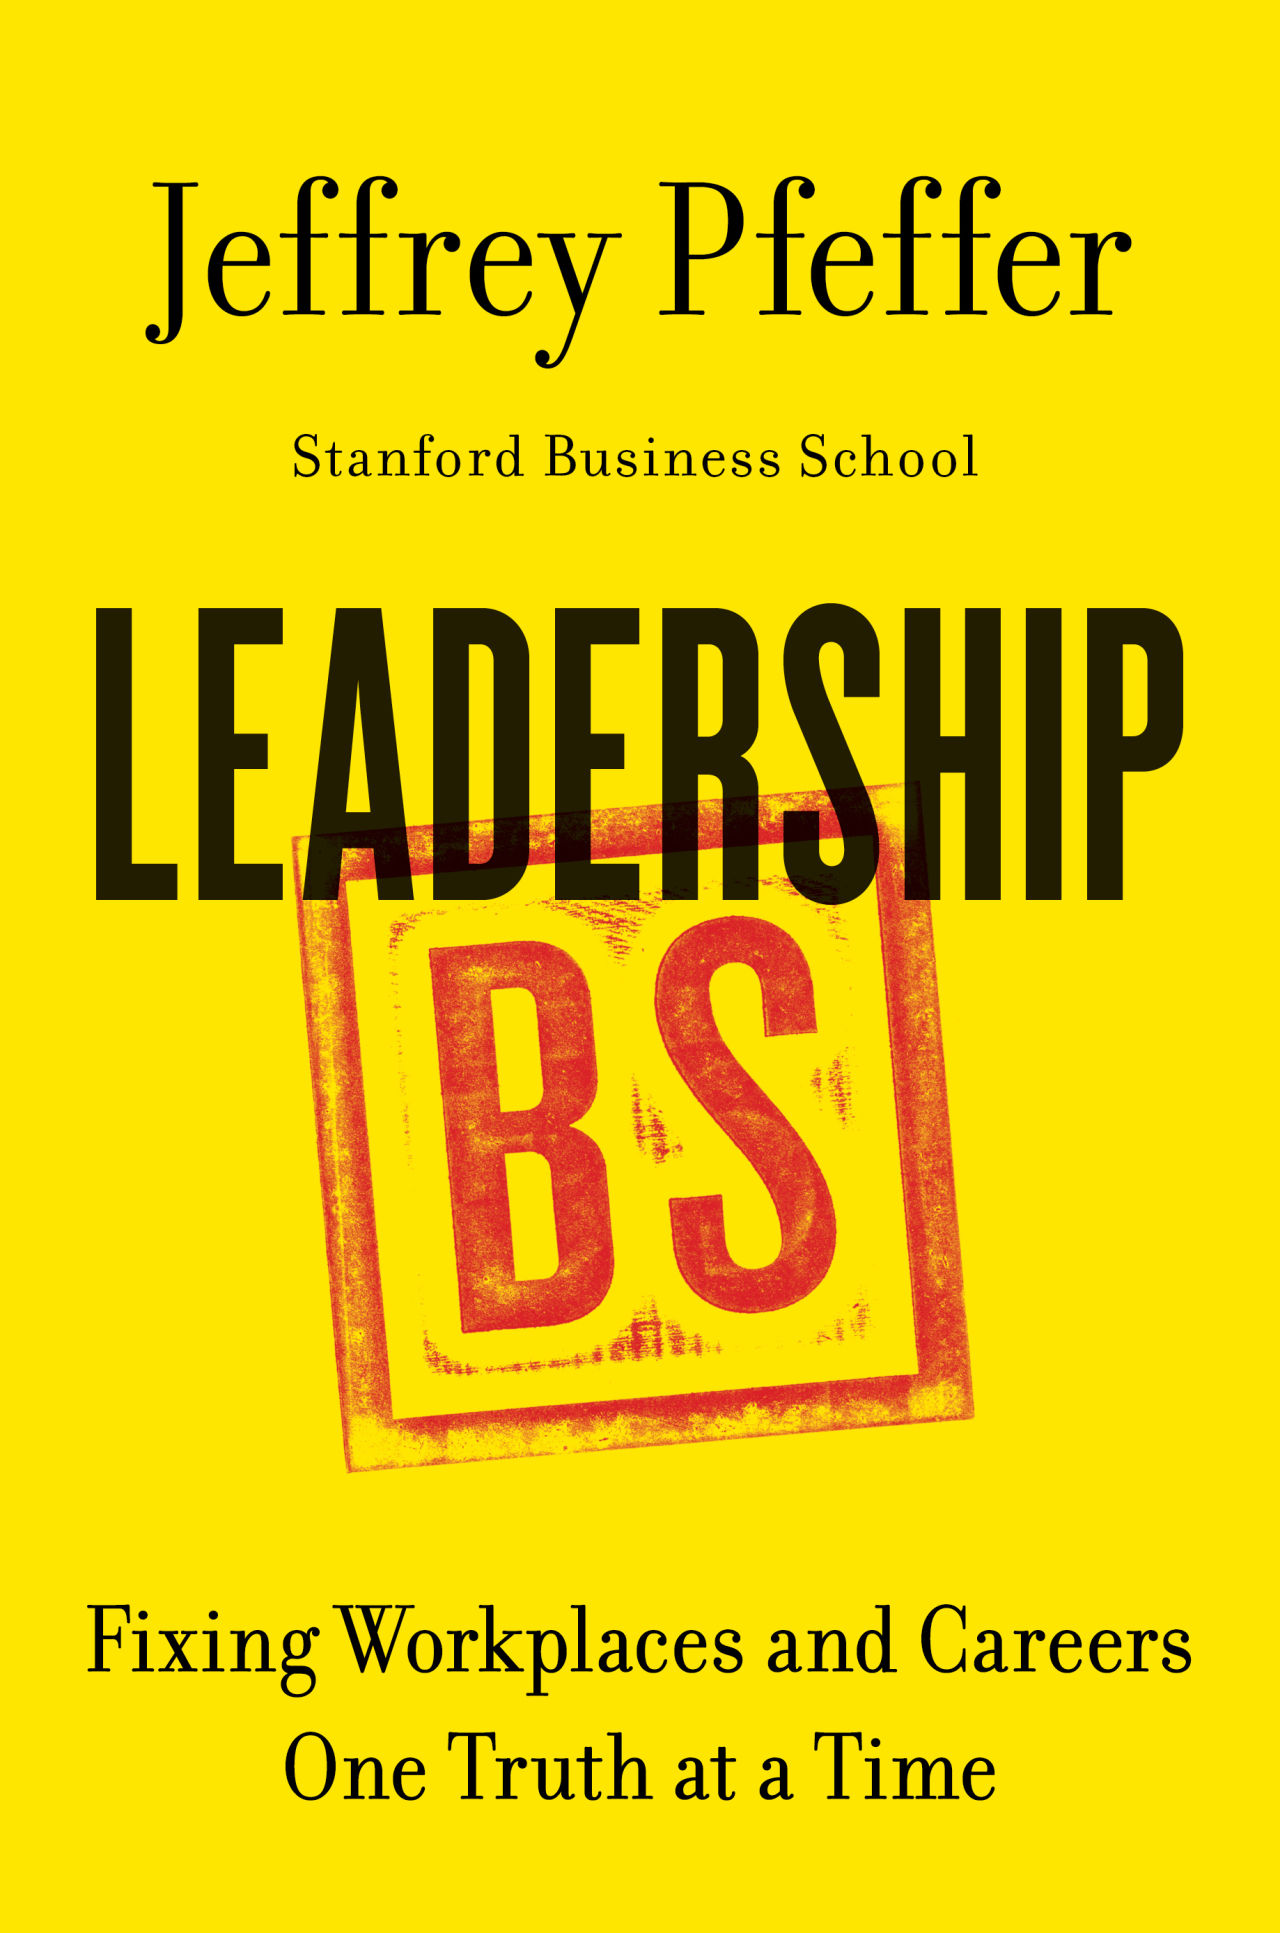 leadership-bs-book-cover-jeffrey-pfeffer